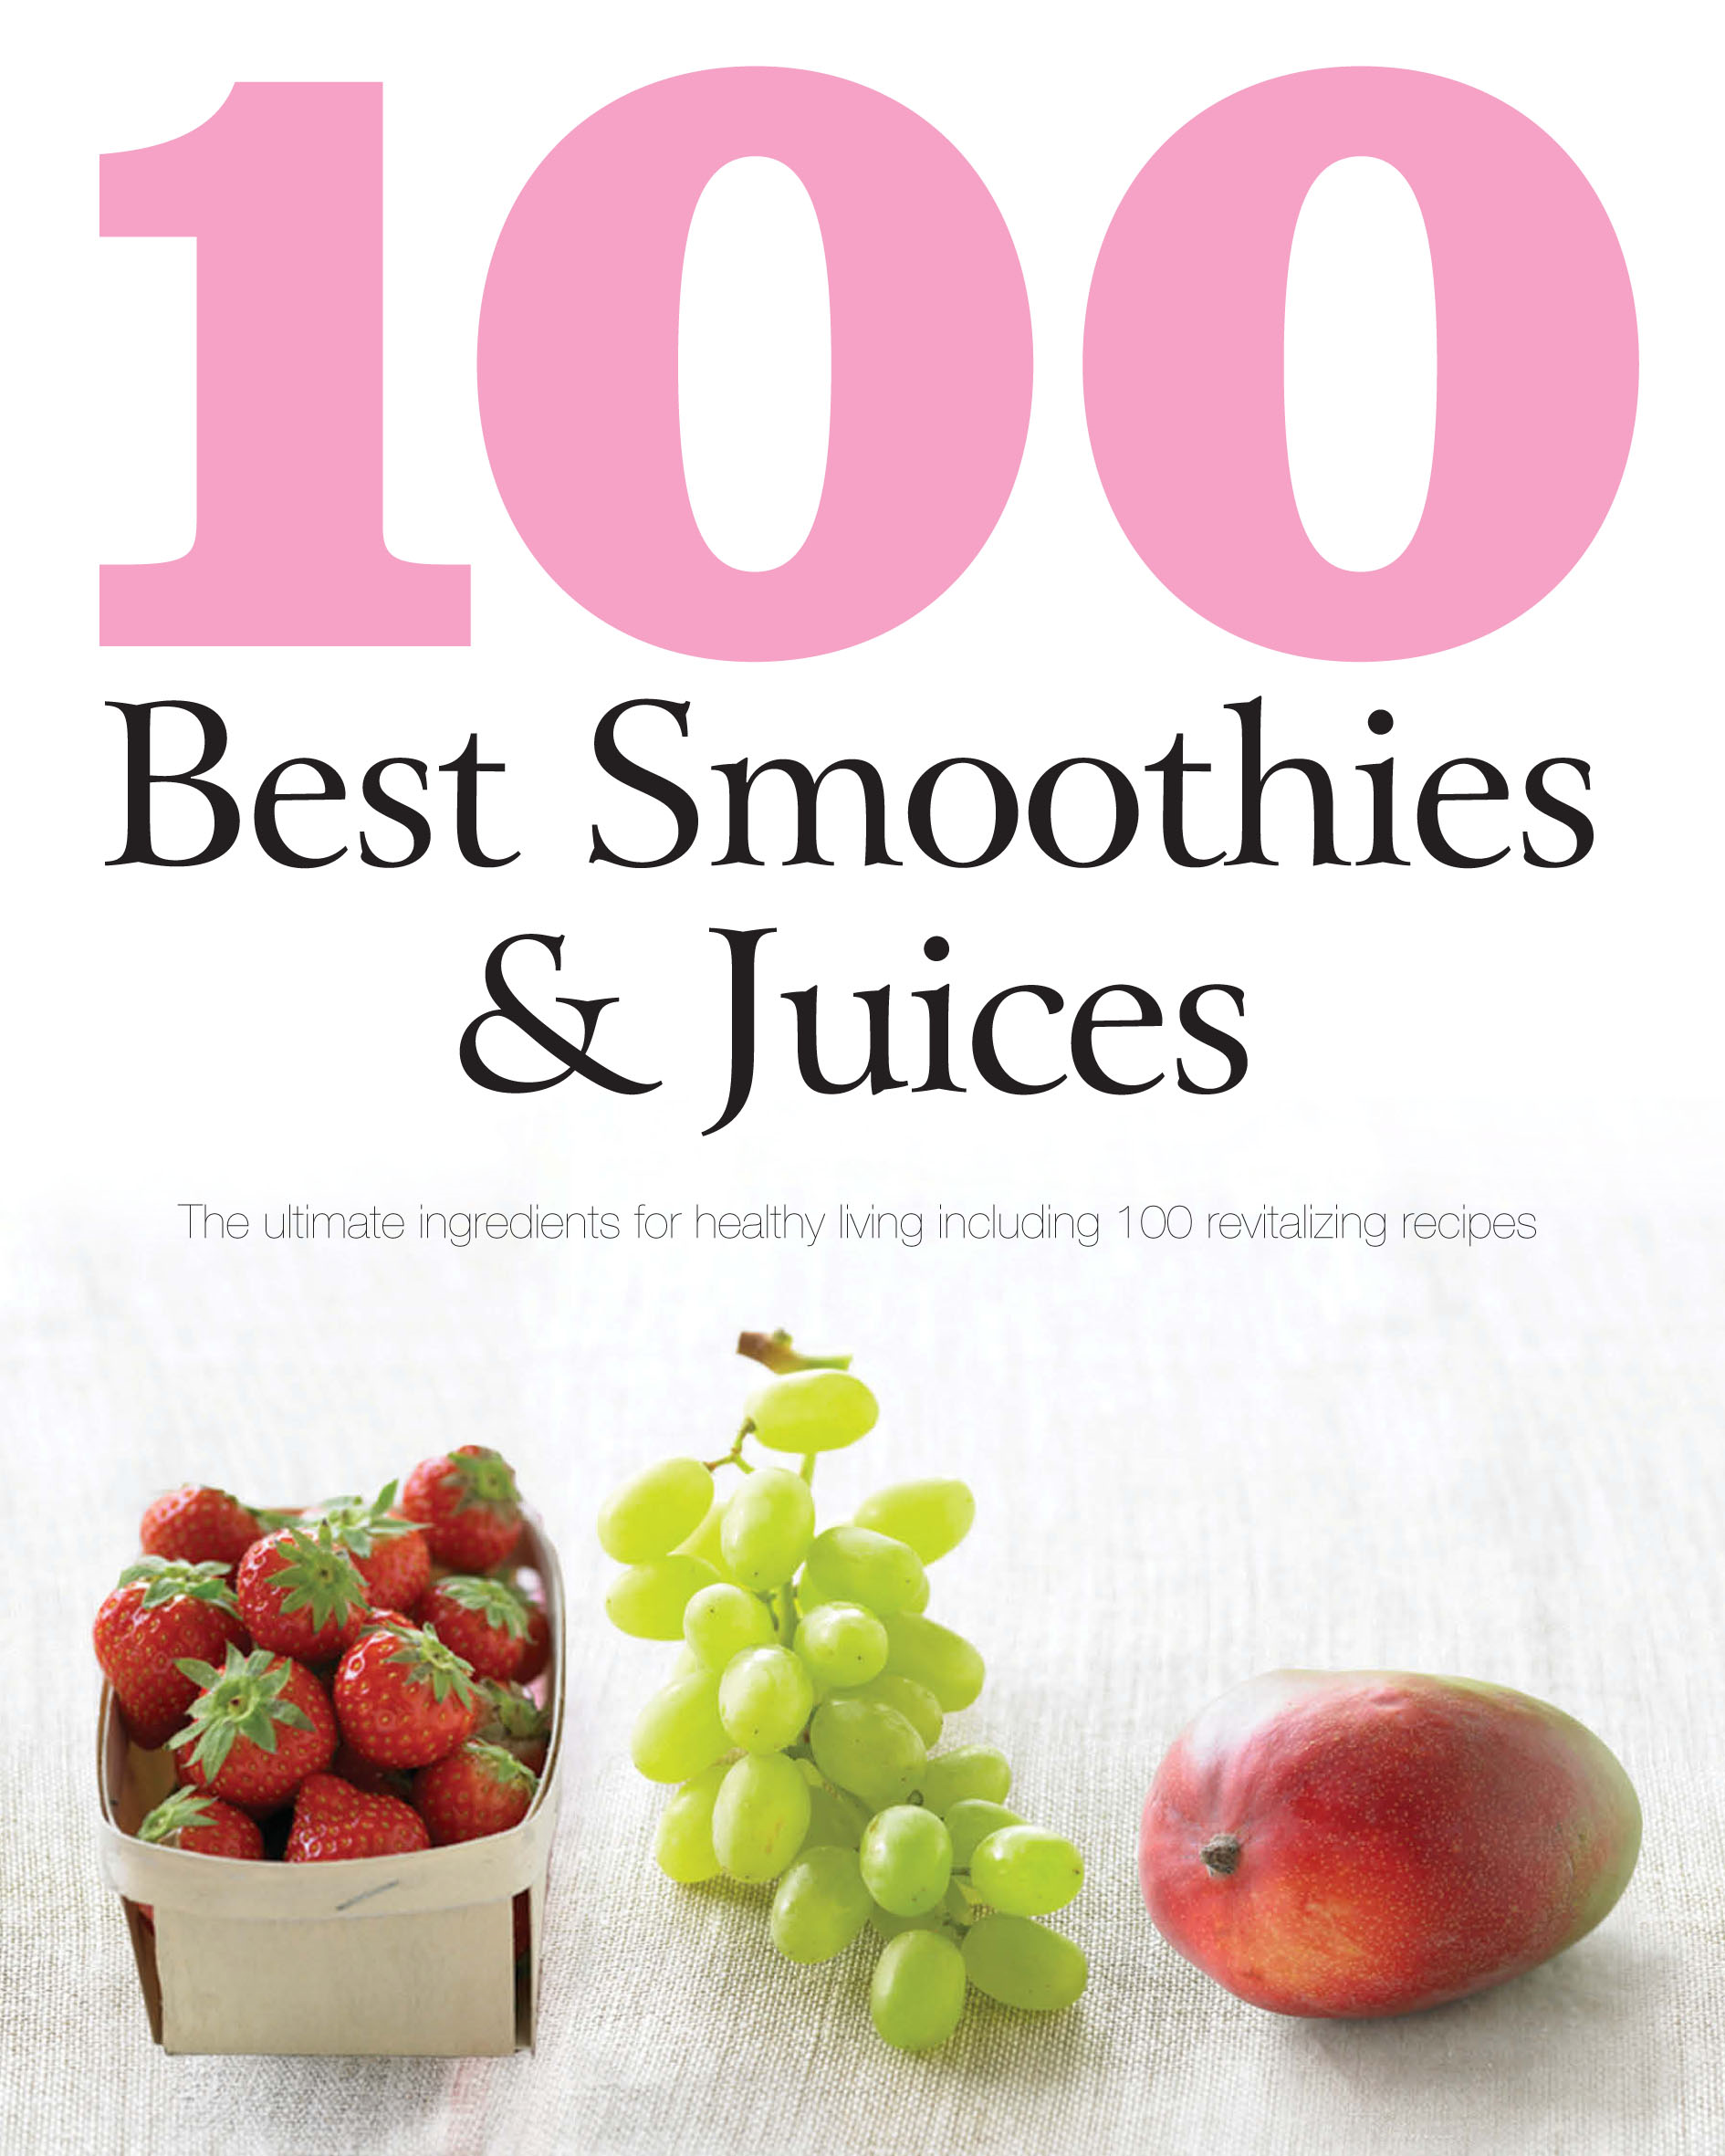 100 Best Smoothies & Juices The Ultimate Ingredients For Healthy Living Including 100 Revitalizing Recipes